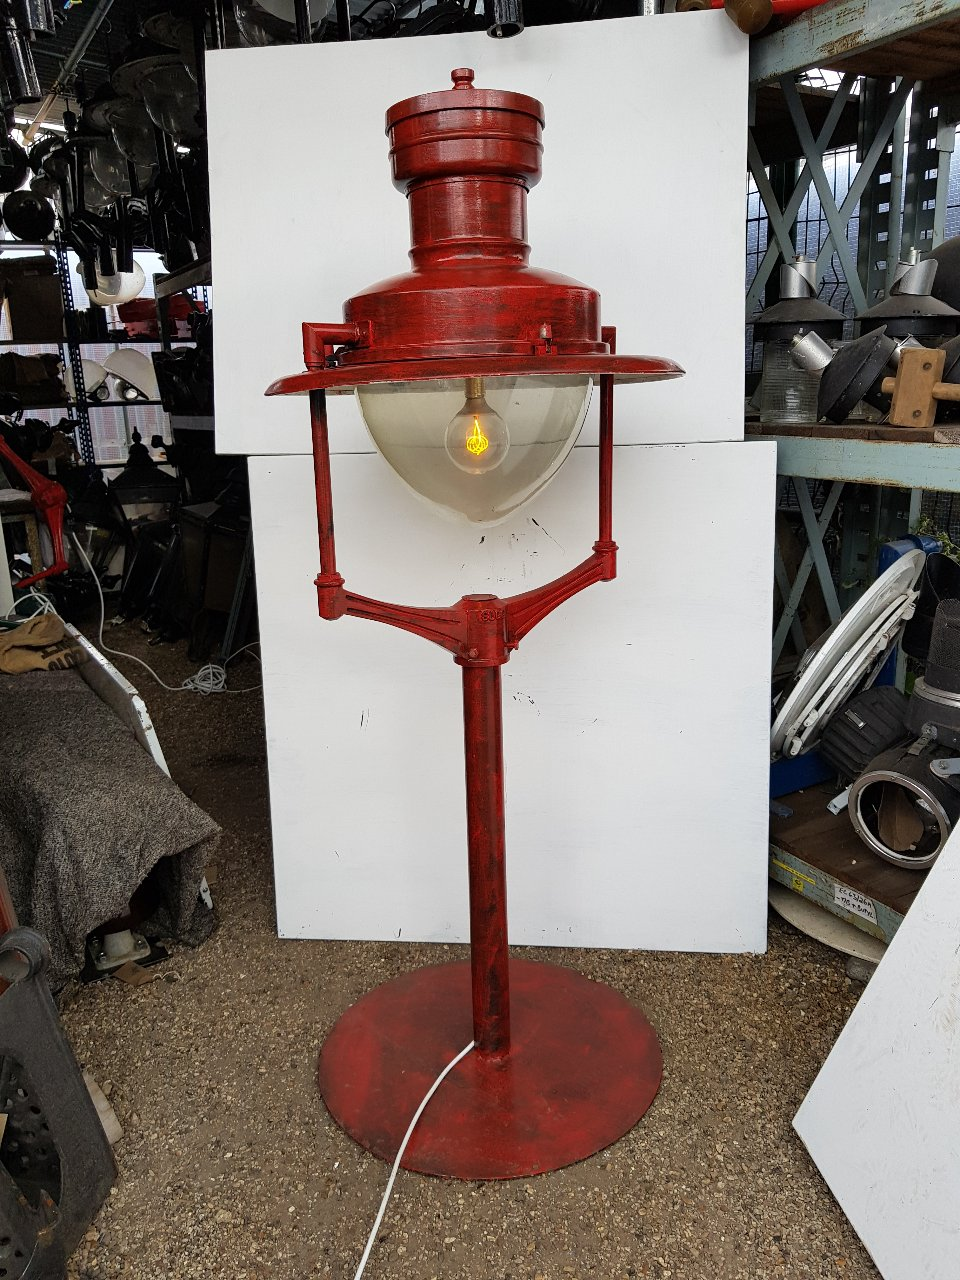 Red Sugs Up Cycled With Eddison Lamps